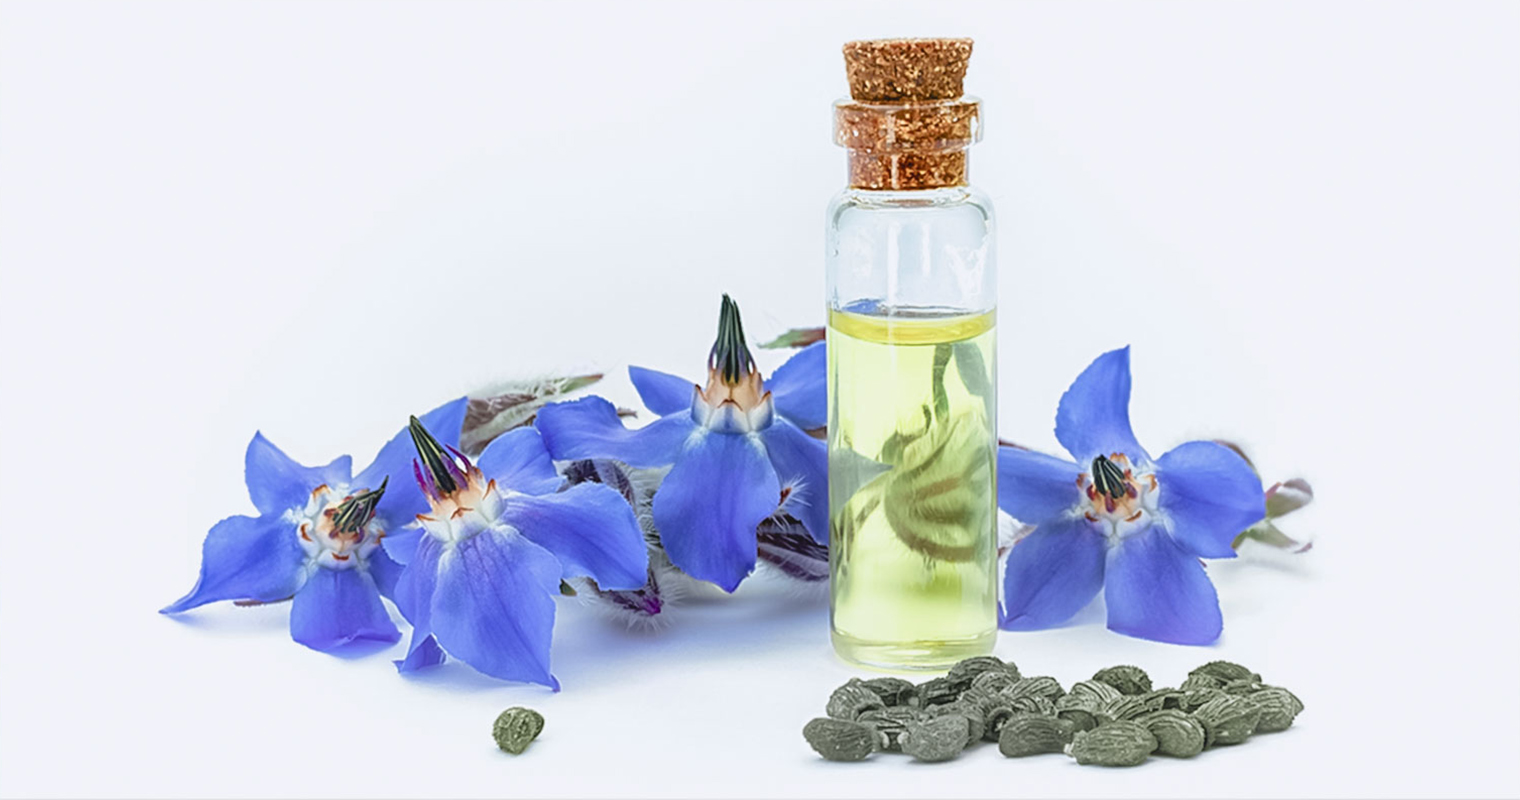 A bottle of Borage oil in front of Borage flower and Borage seeds